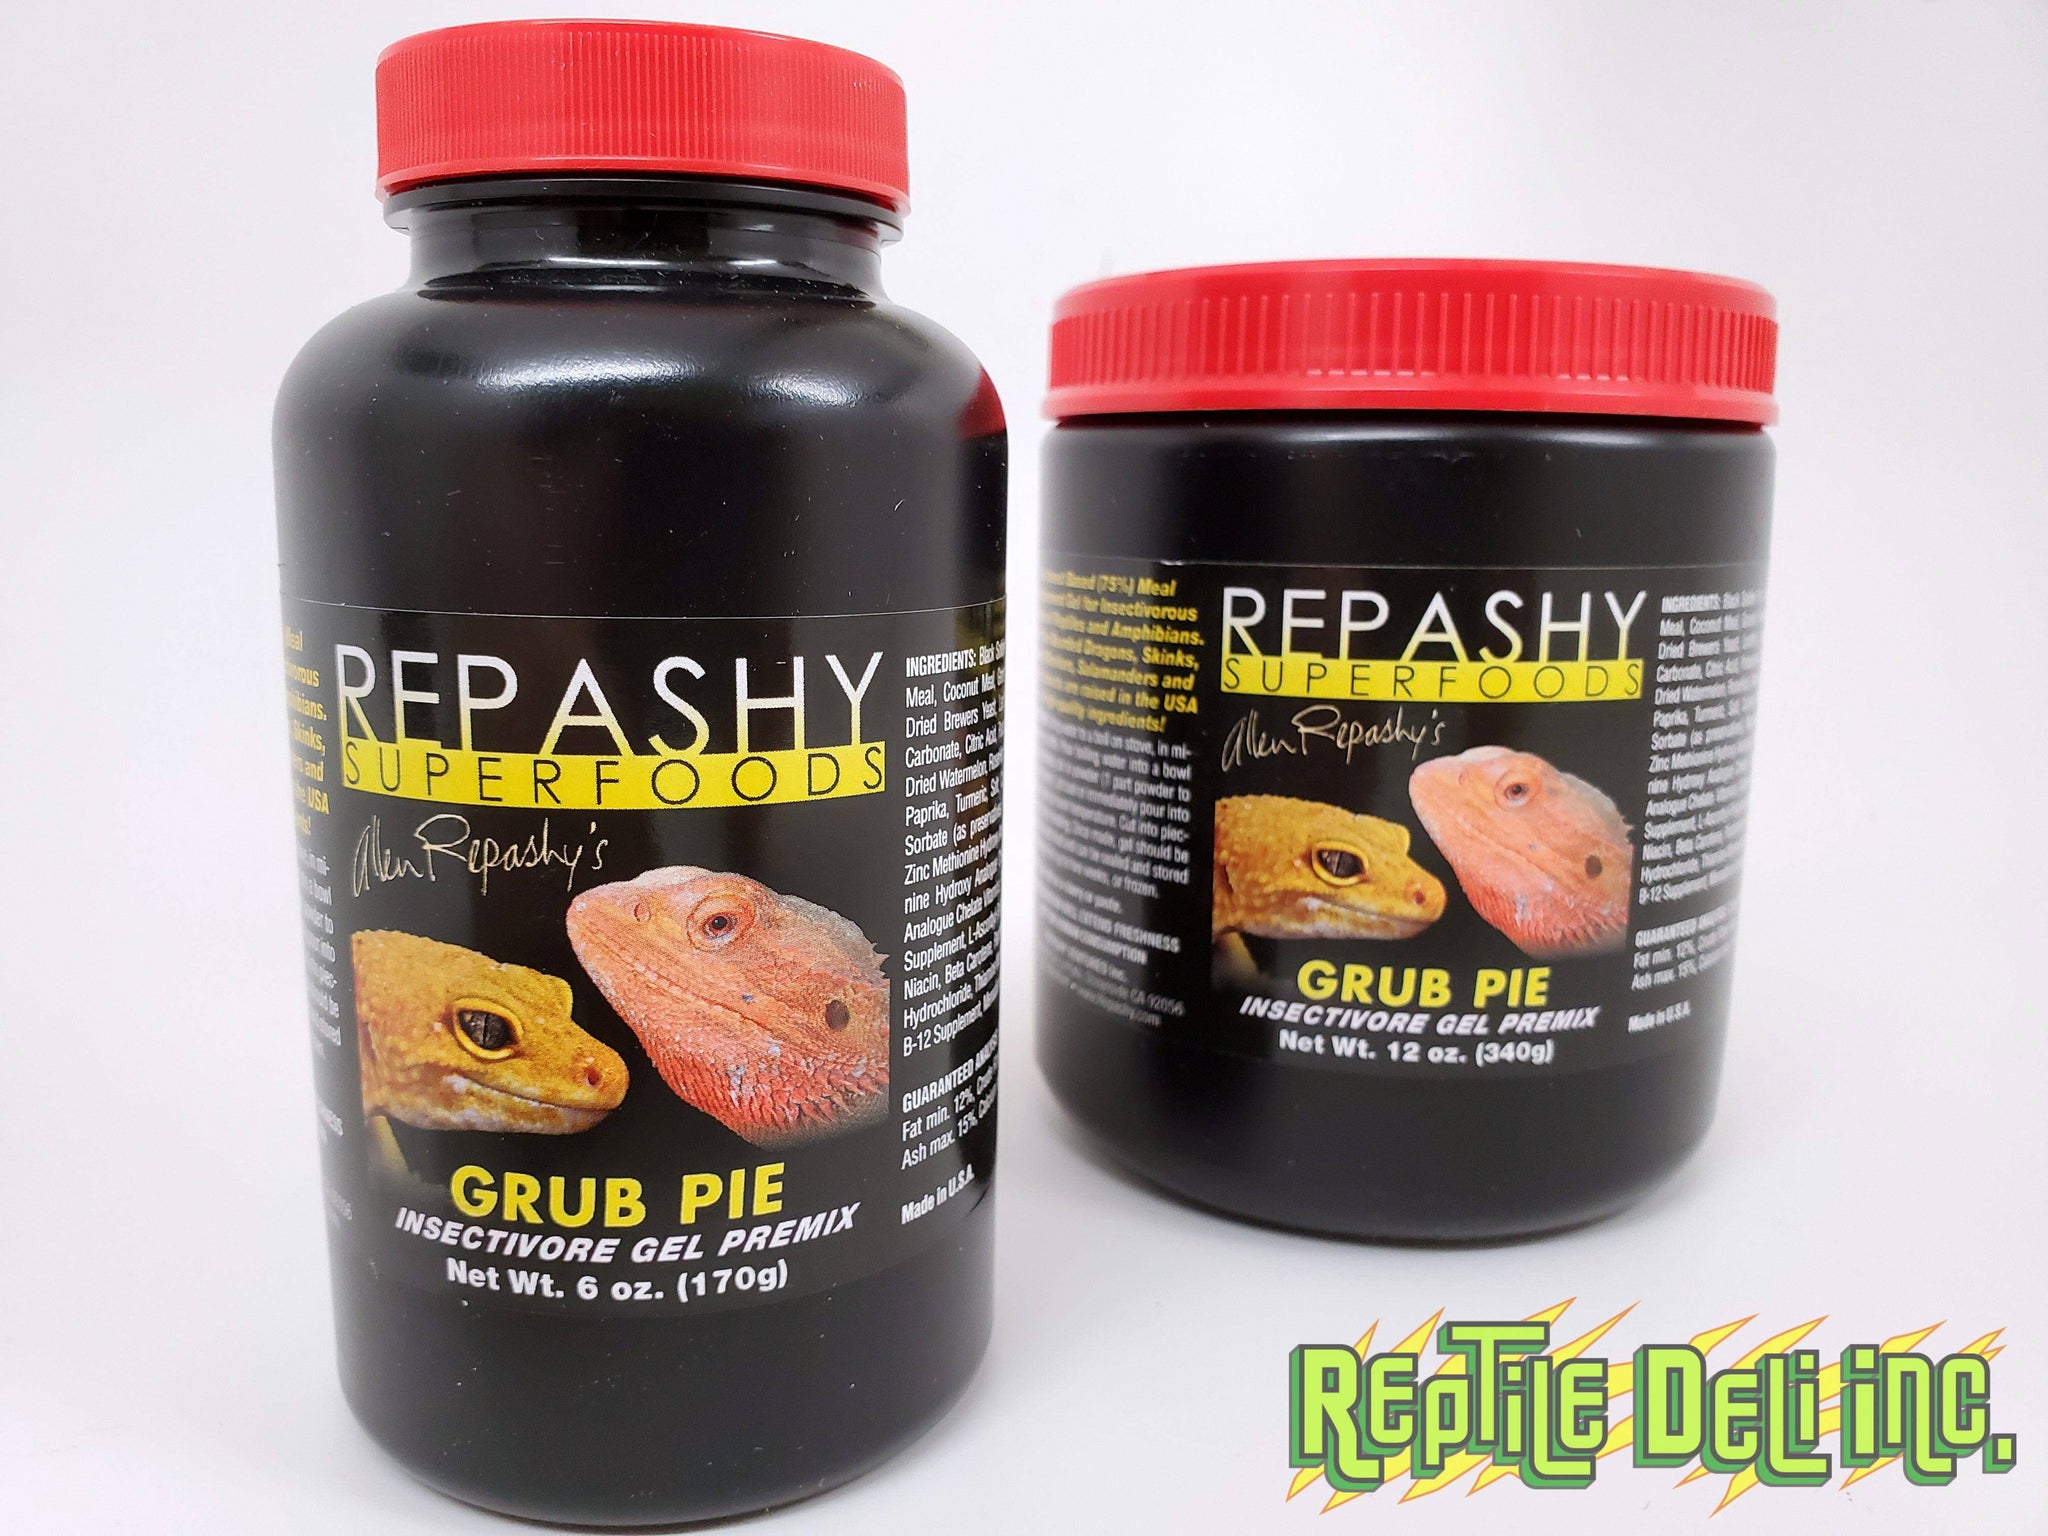 Repashy Grub Pie - ADD ON ITEM